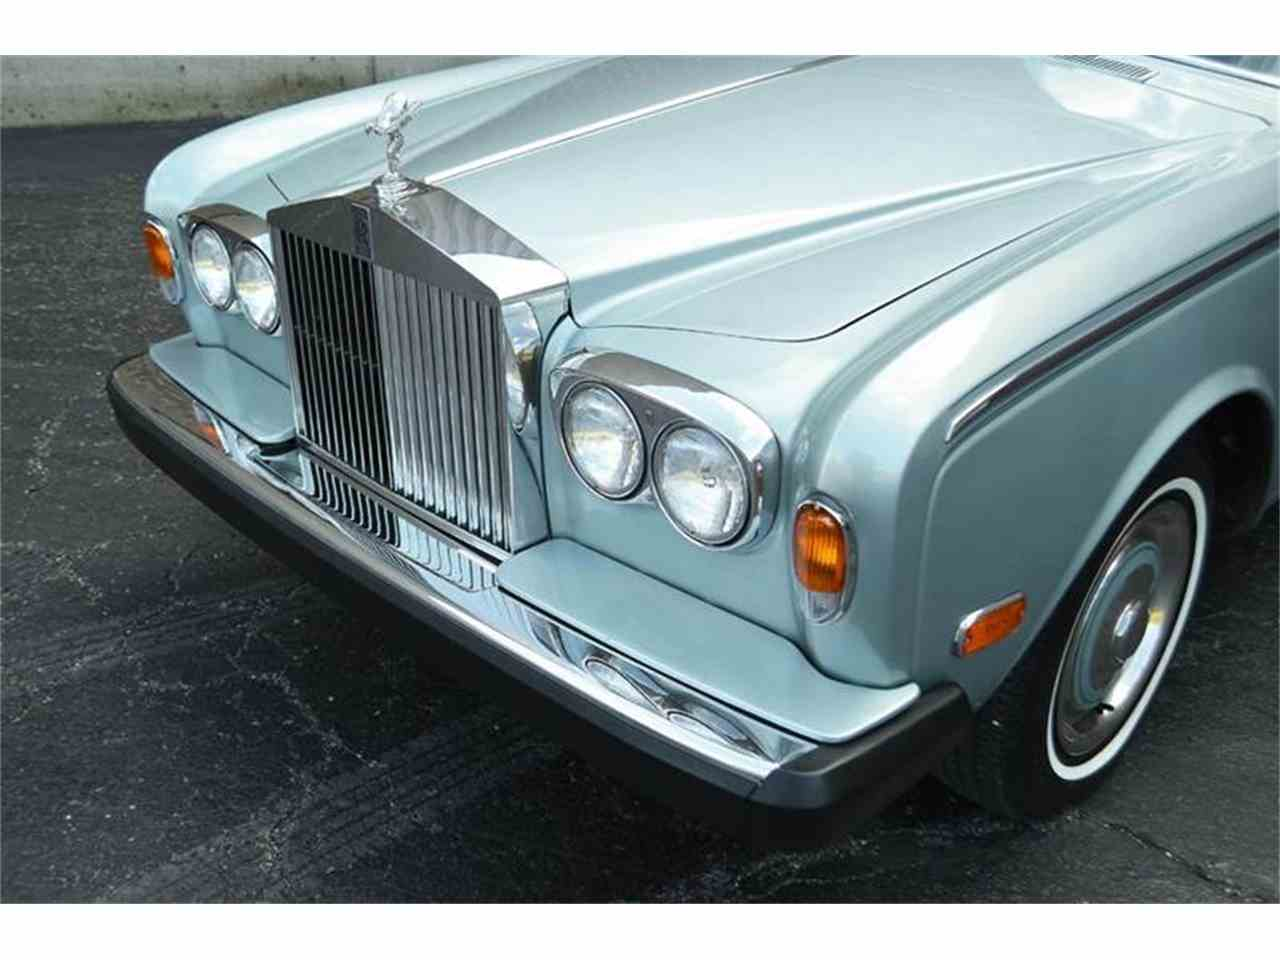 1973 Rolls Royce Silver Shadow For Sale In Carey Illinois 60013 on Vehicles Shadow Matching